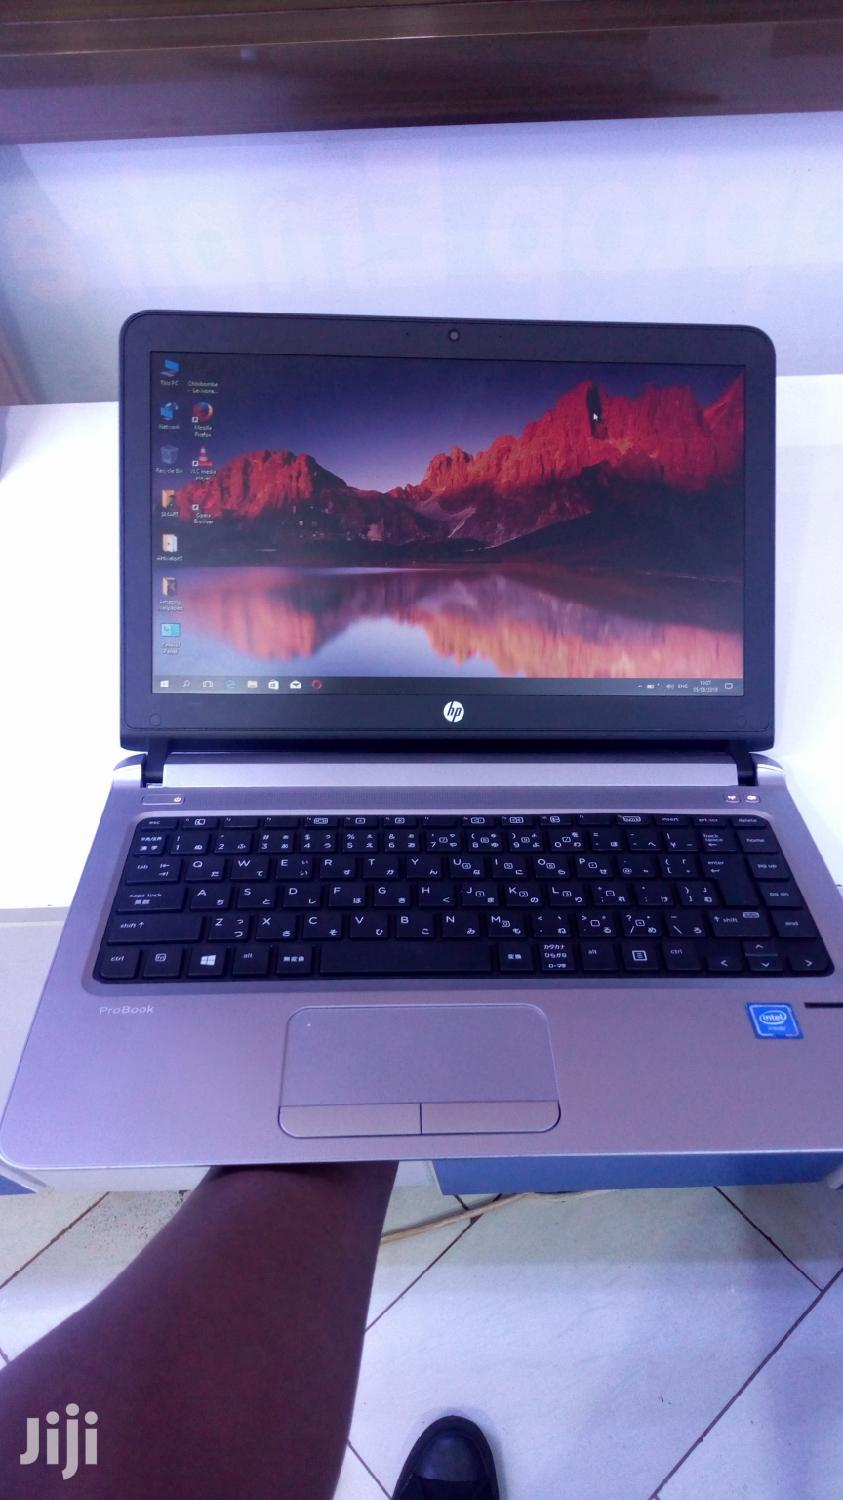 Laptop HP ProBook 430 G3 4GB Intel Celeron HDD 500GB | Laptops & Computers for sale in Kampala, Central Region, Uganda